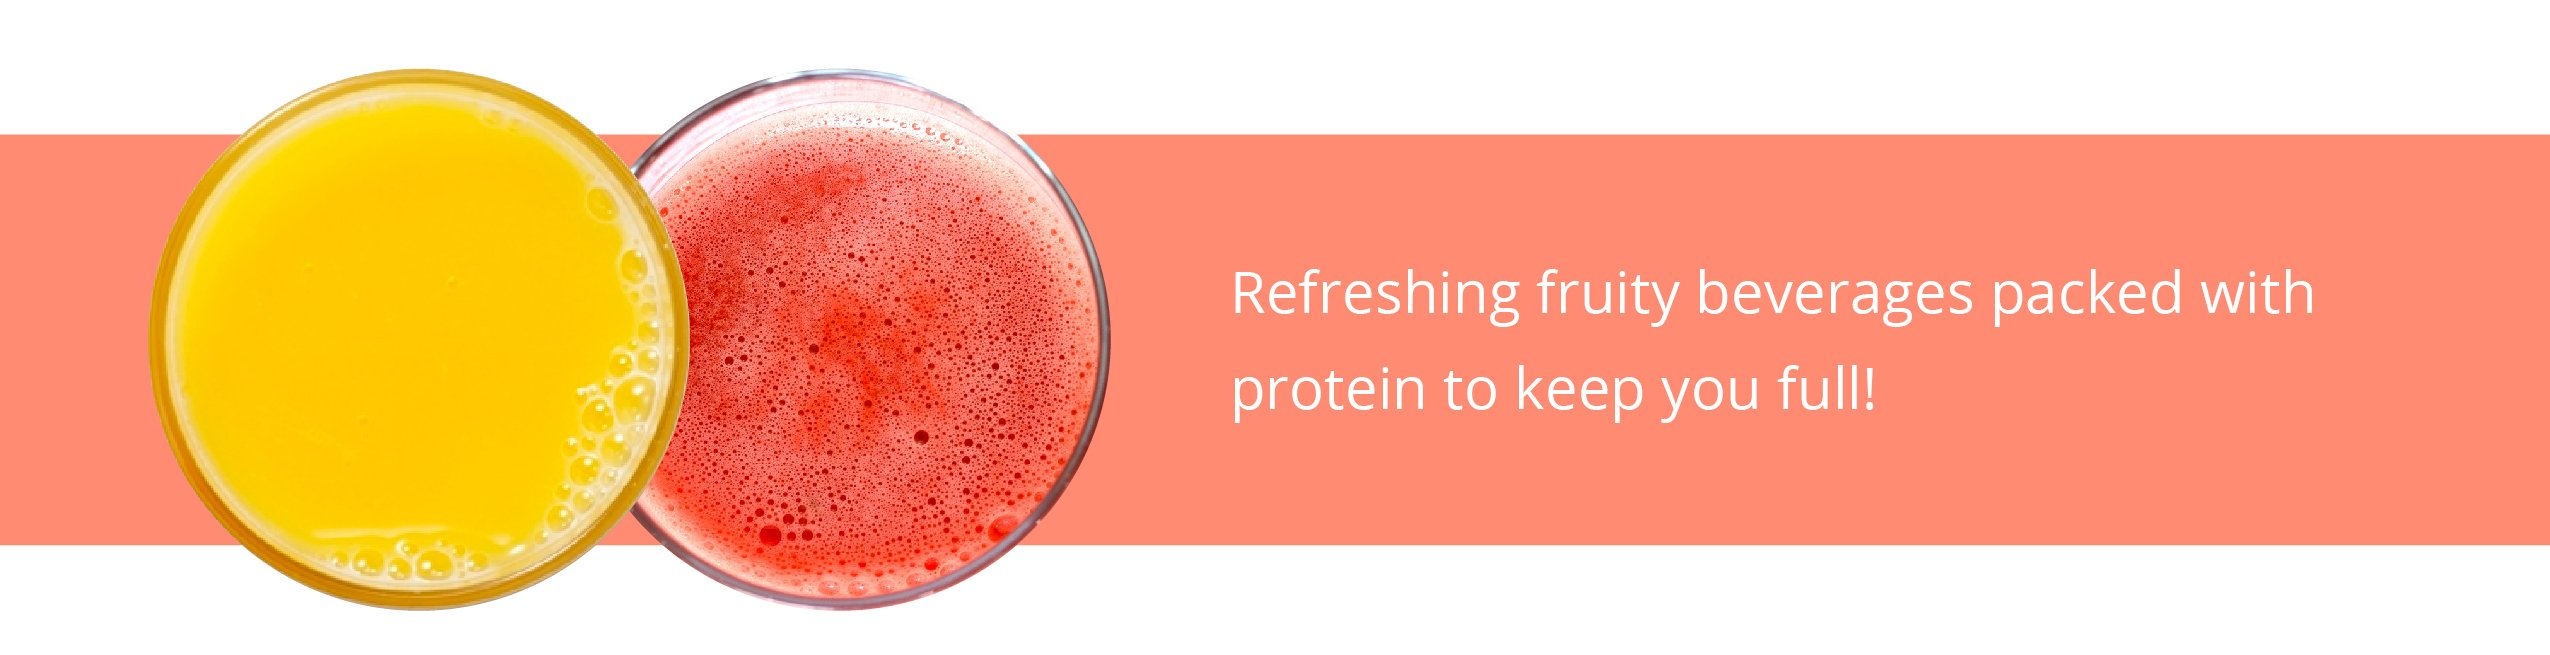 Protein Fruit Drinks